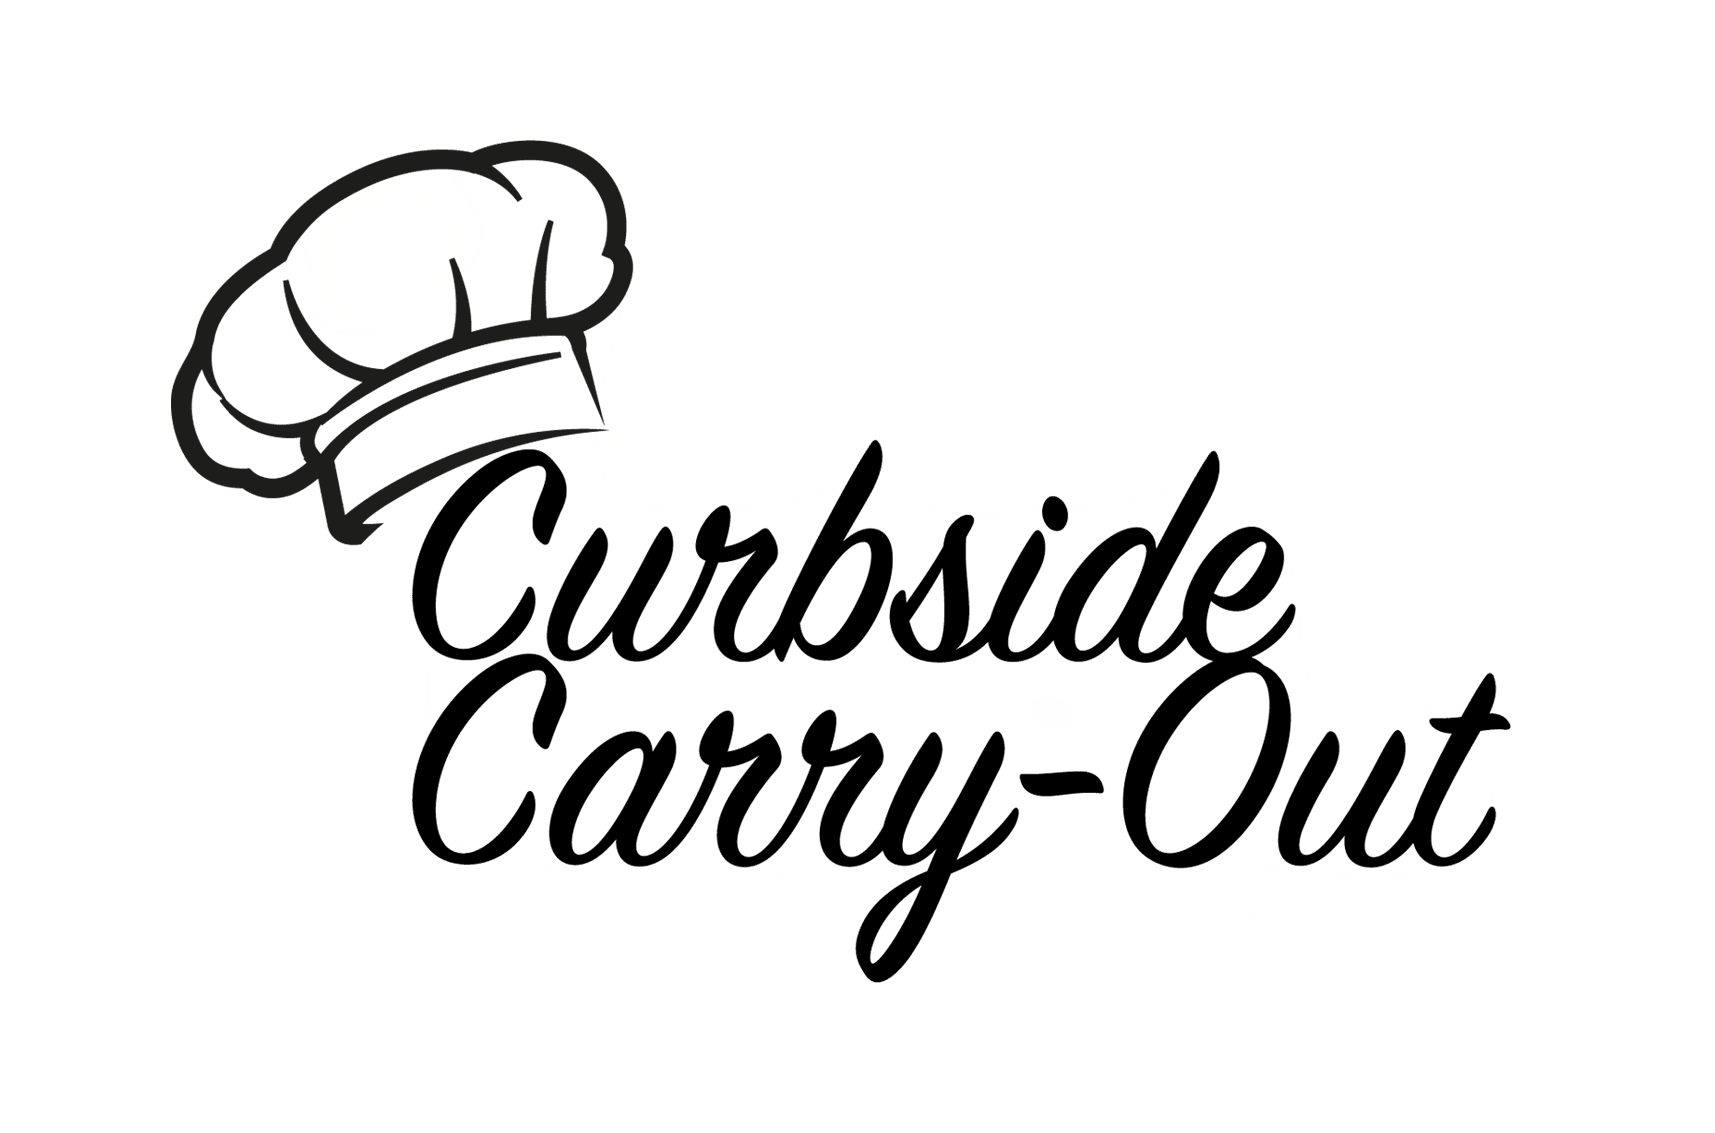 curbside carry out